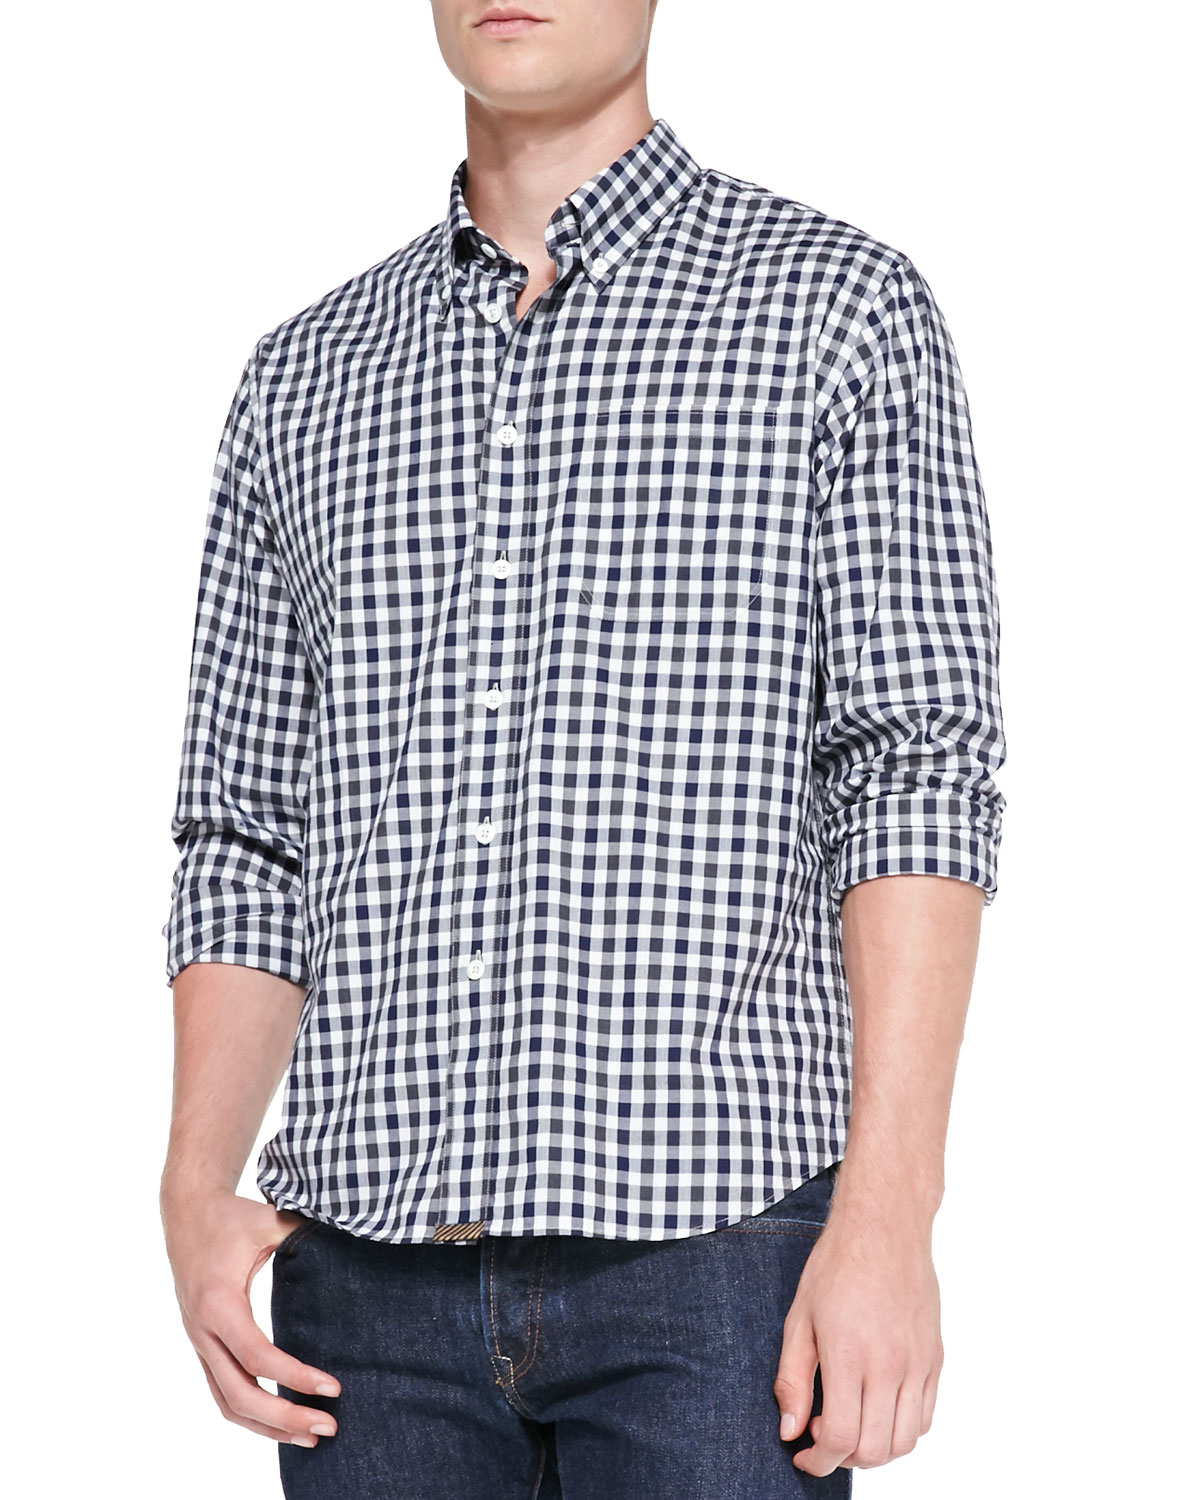 Billy Reid Tuscumbia Gingham Button Down Shirt In Blue For